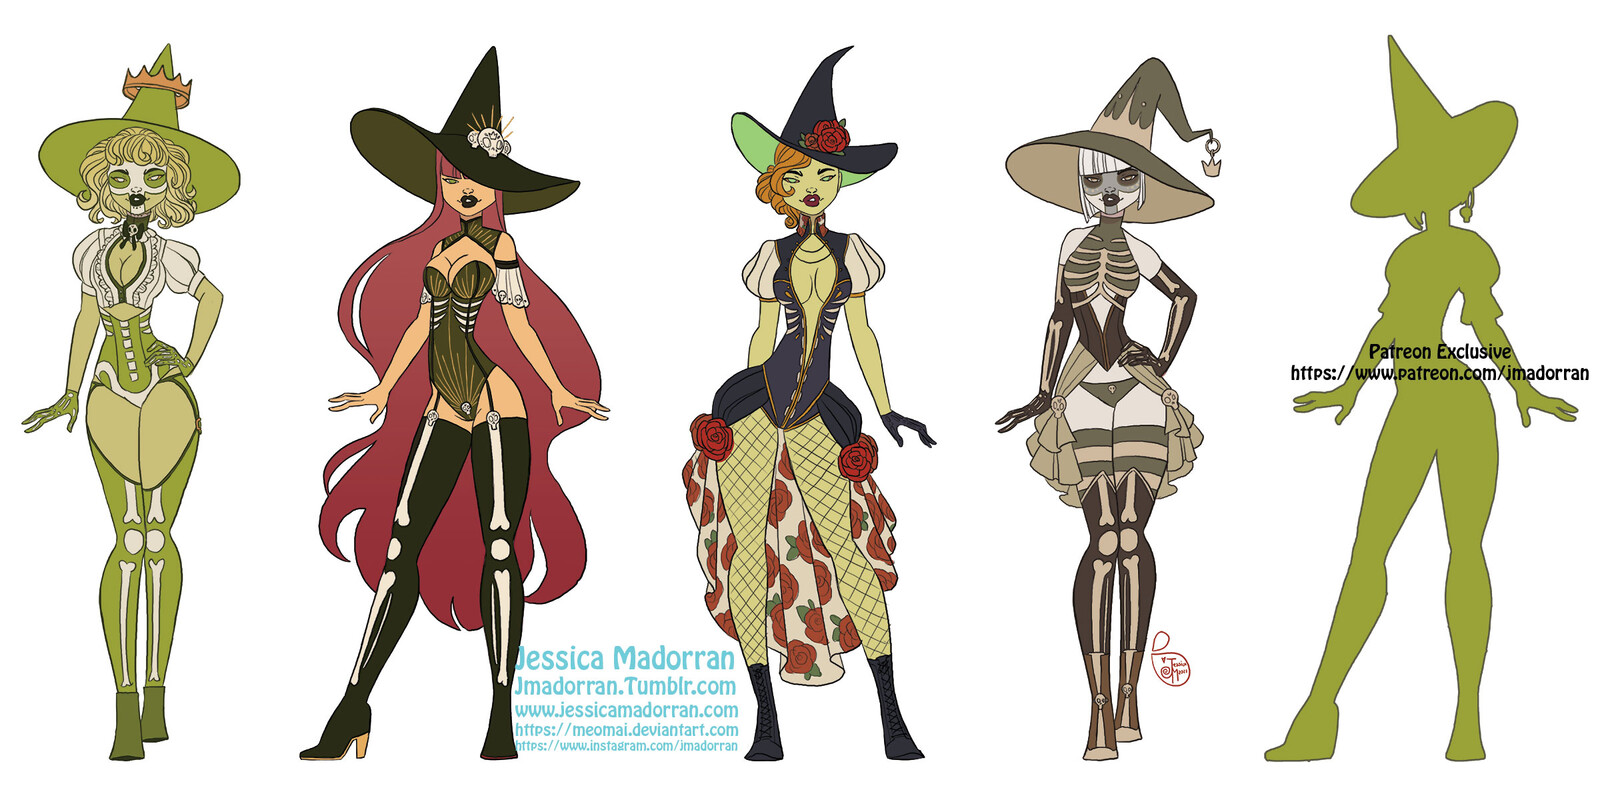 Patreon - September 2021 - Twisted Frog Prince Character Fashion Exploration